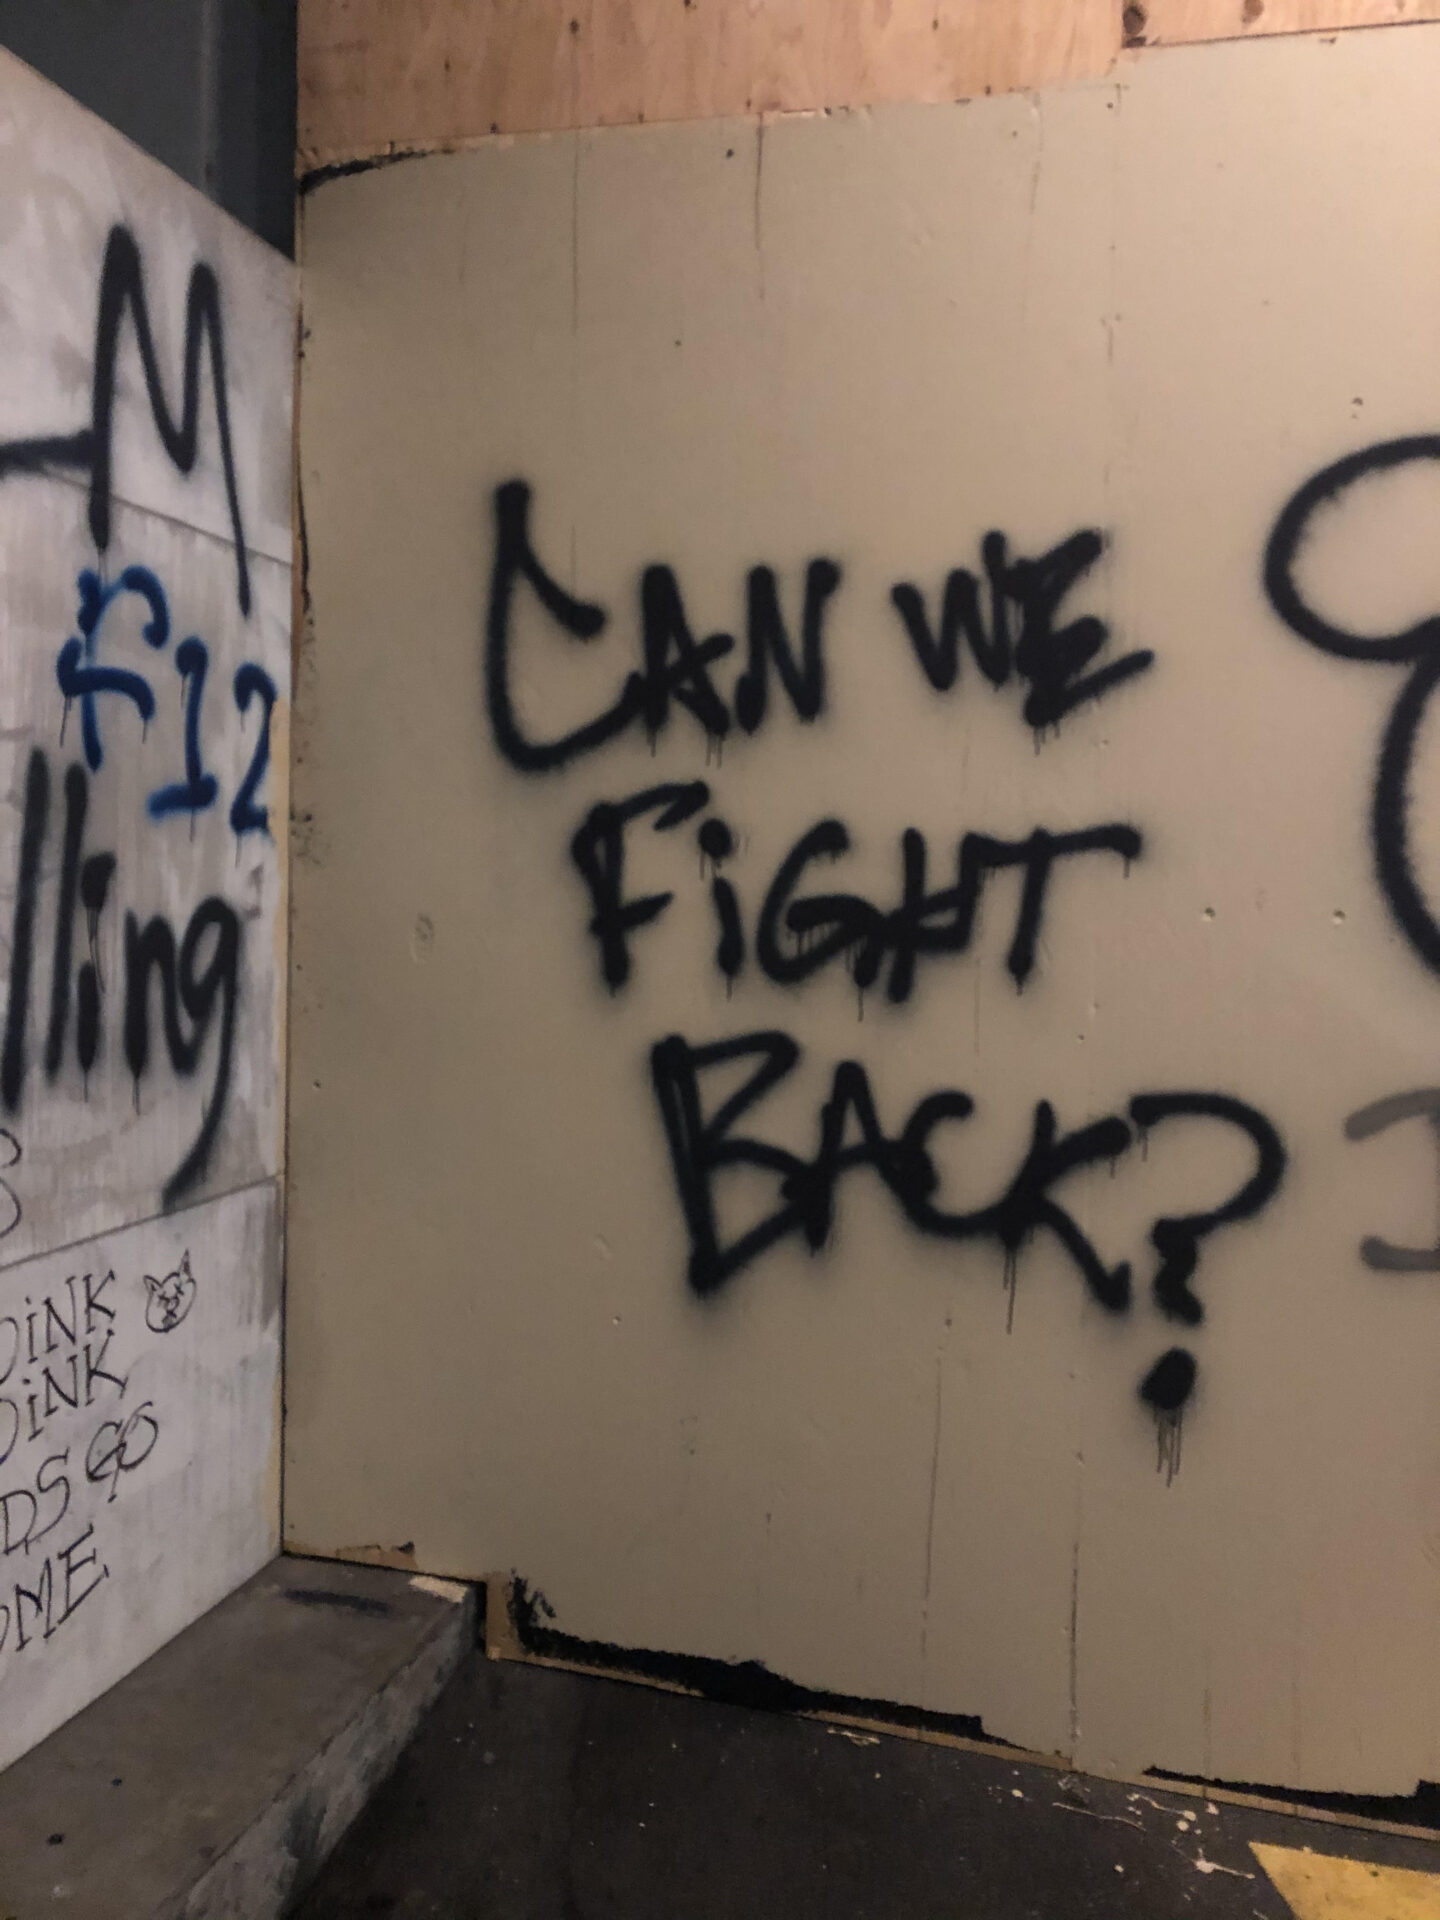 """Photograph of the words """"Can We Fight Back?"""" spray painted in black on a beige wall."""